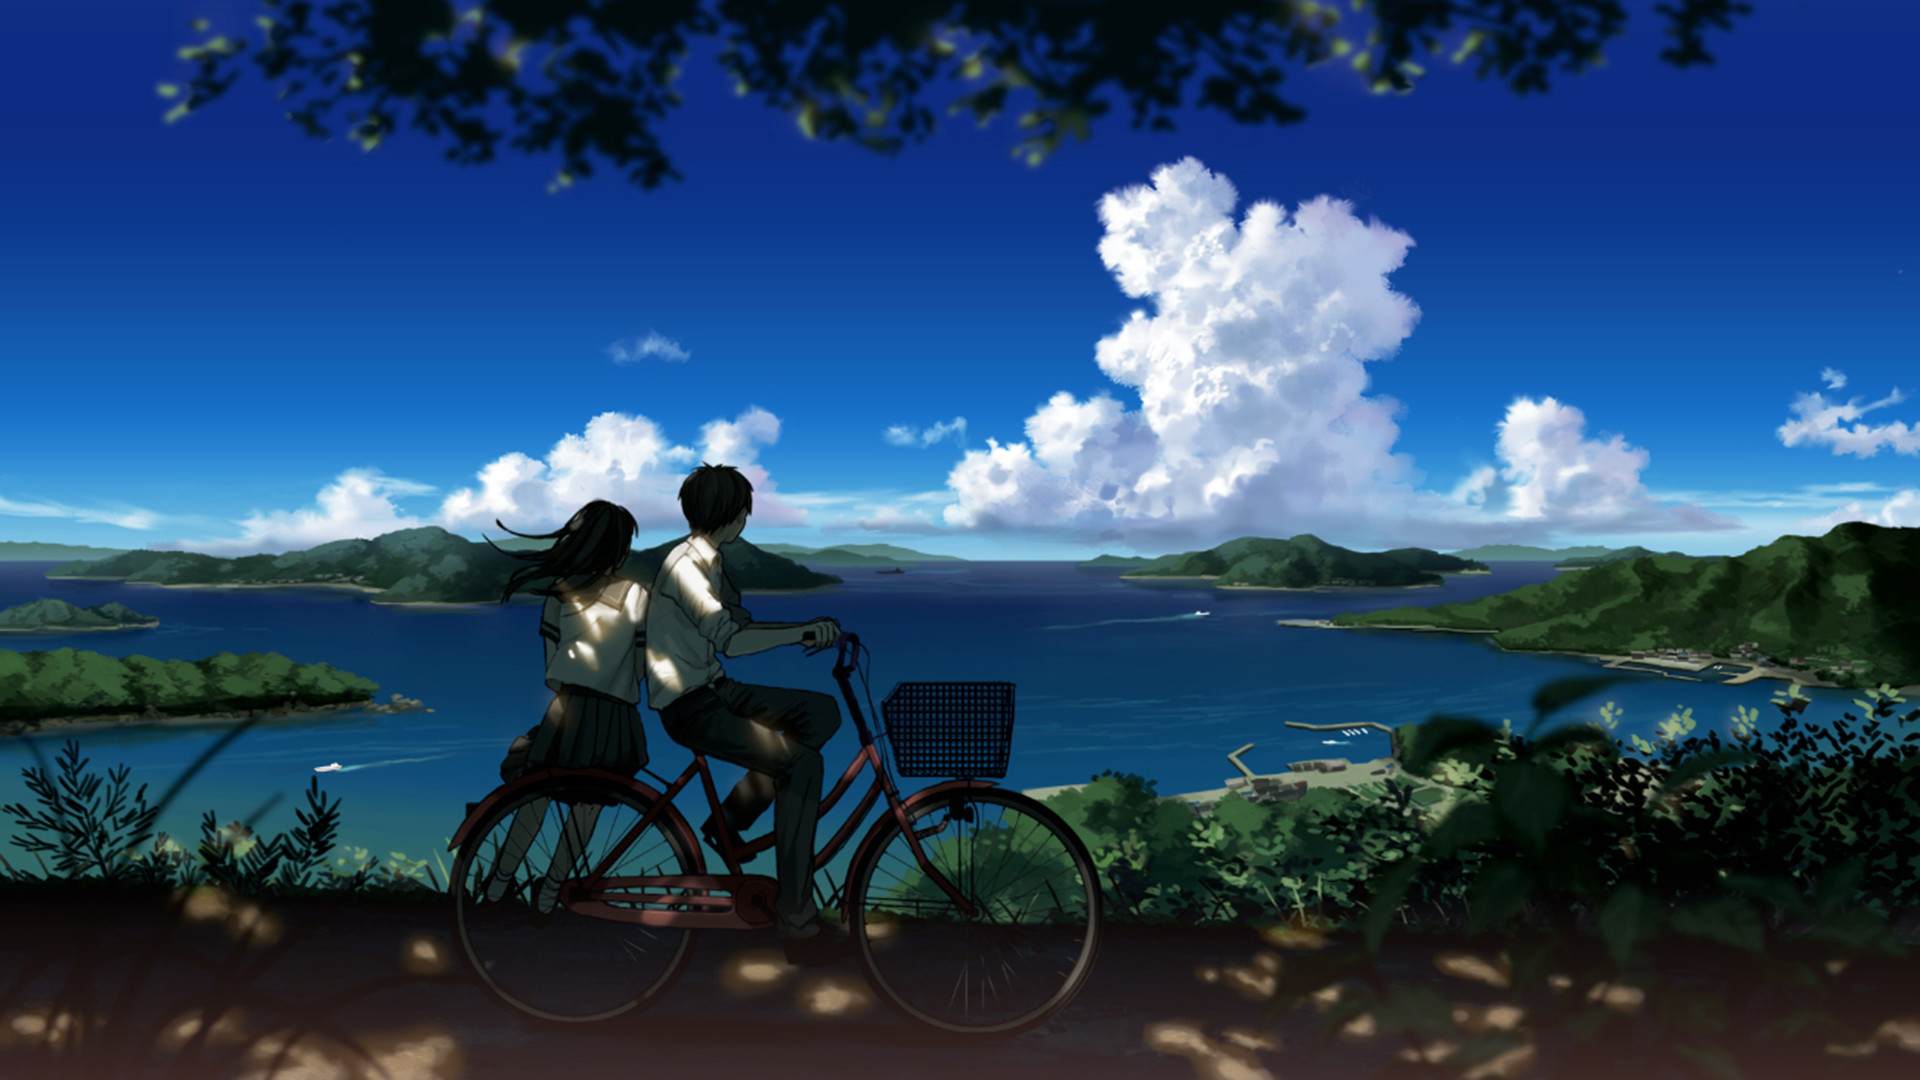 Anime Scenery Wallpapers (62+ pictures)